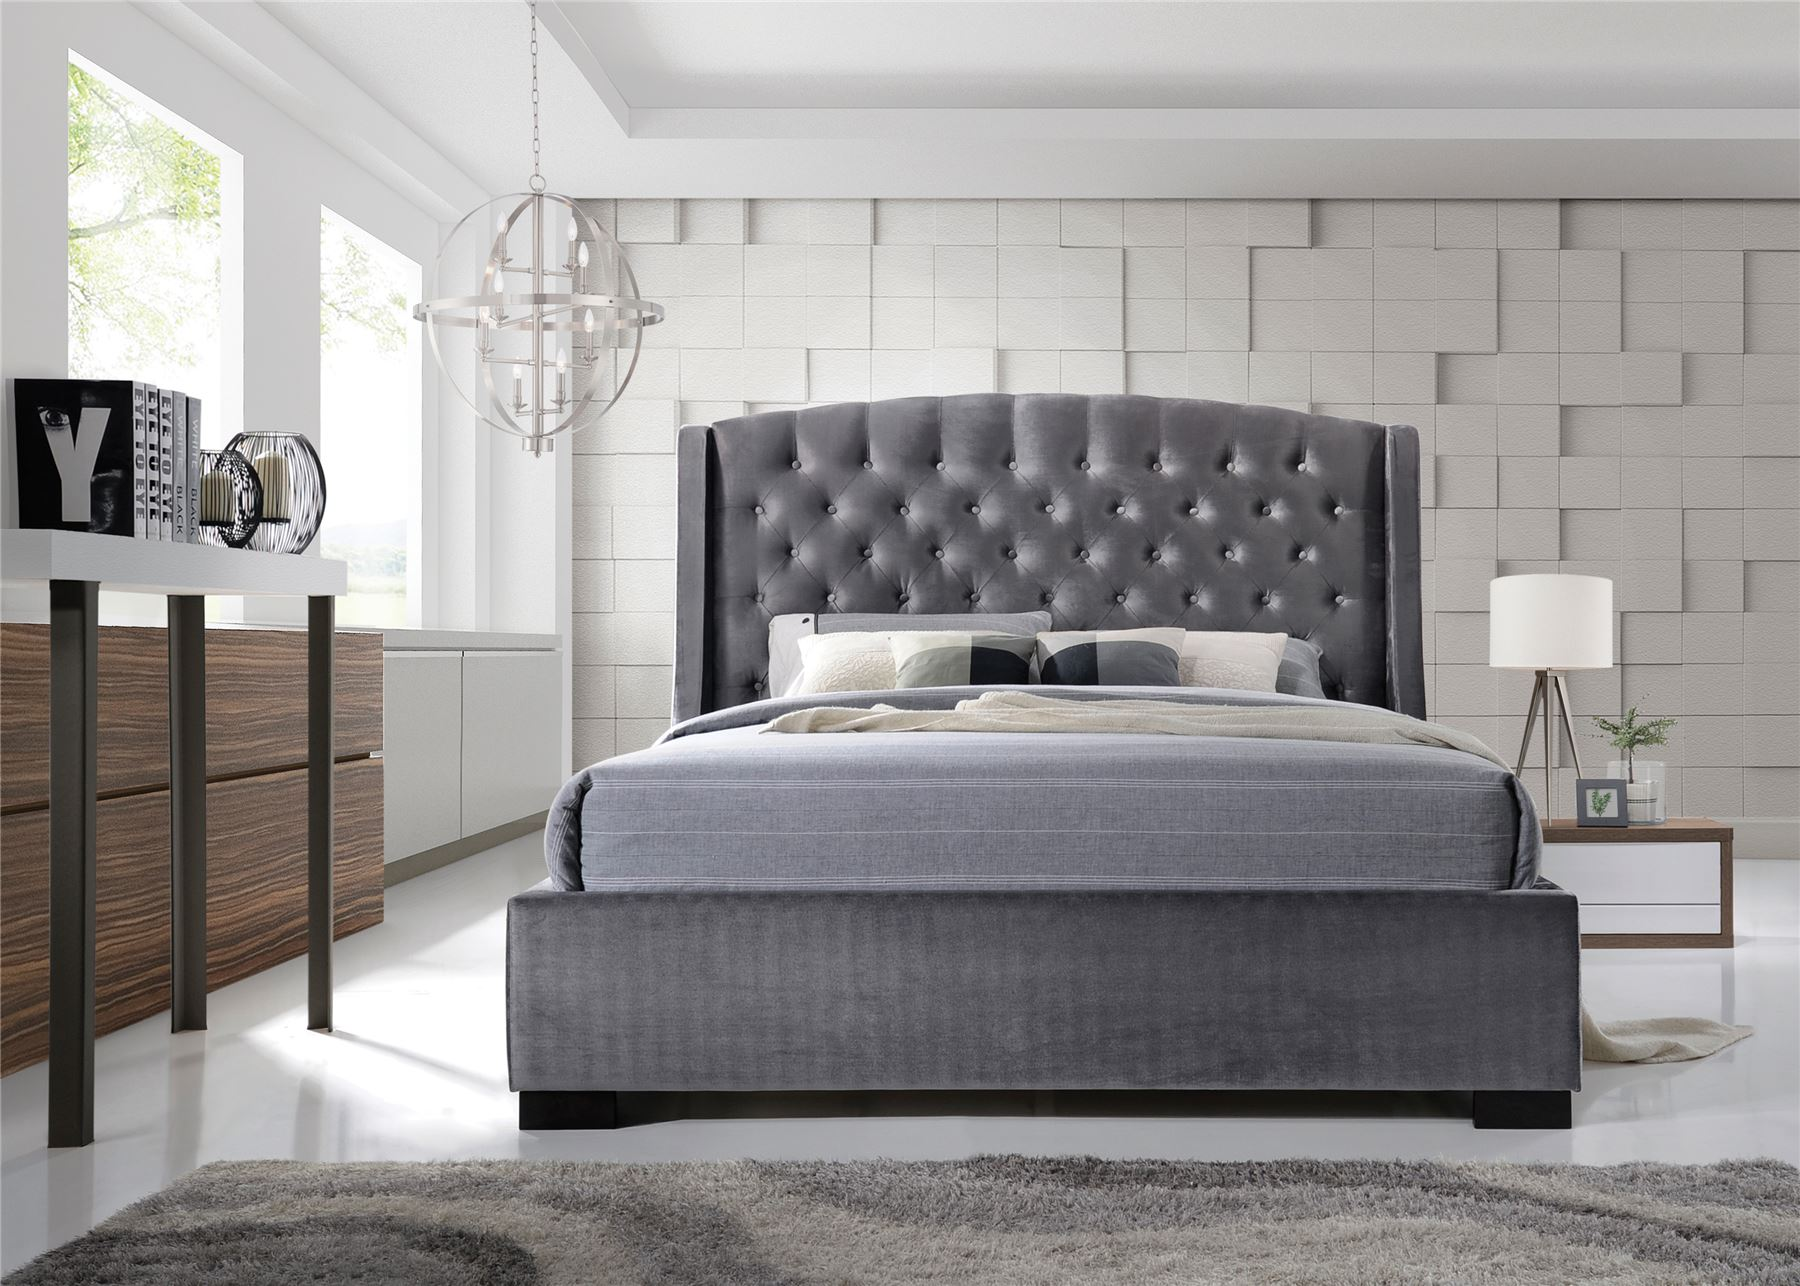 Brando wing back chesterfield double bed frame 4ft6 135cm Bedroom furniture chesterfield